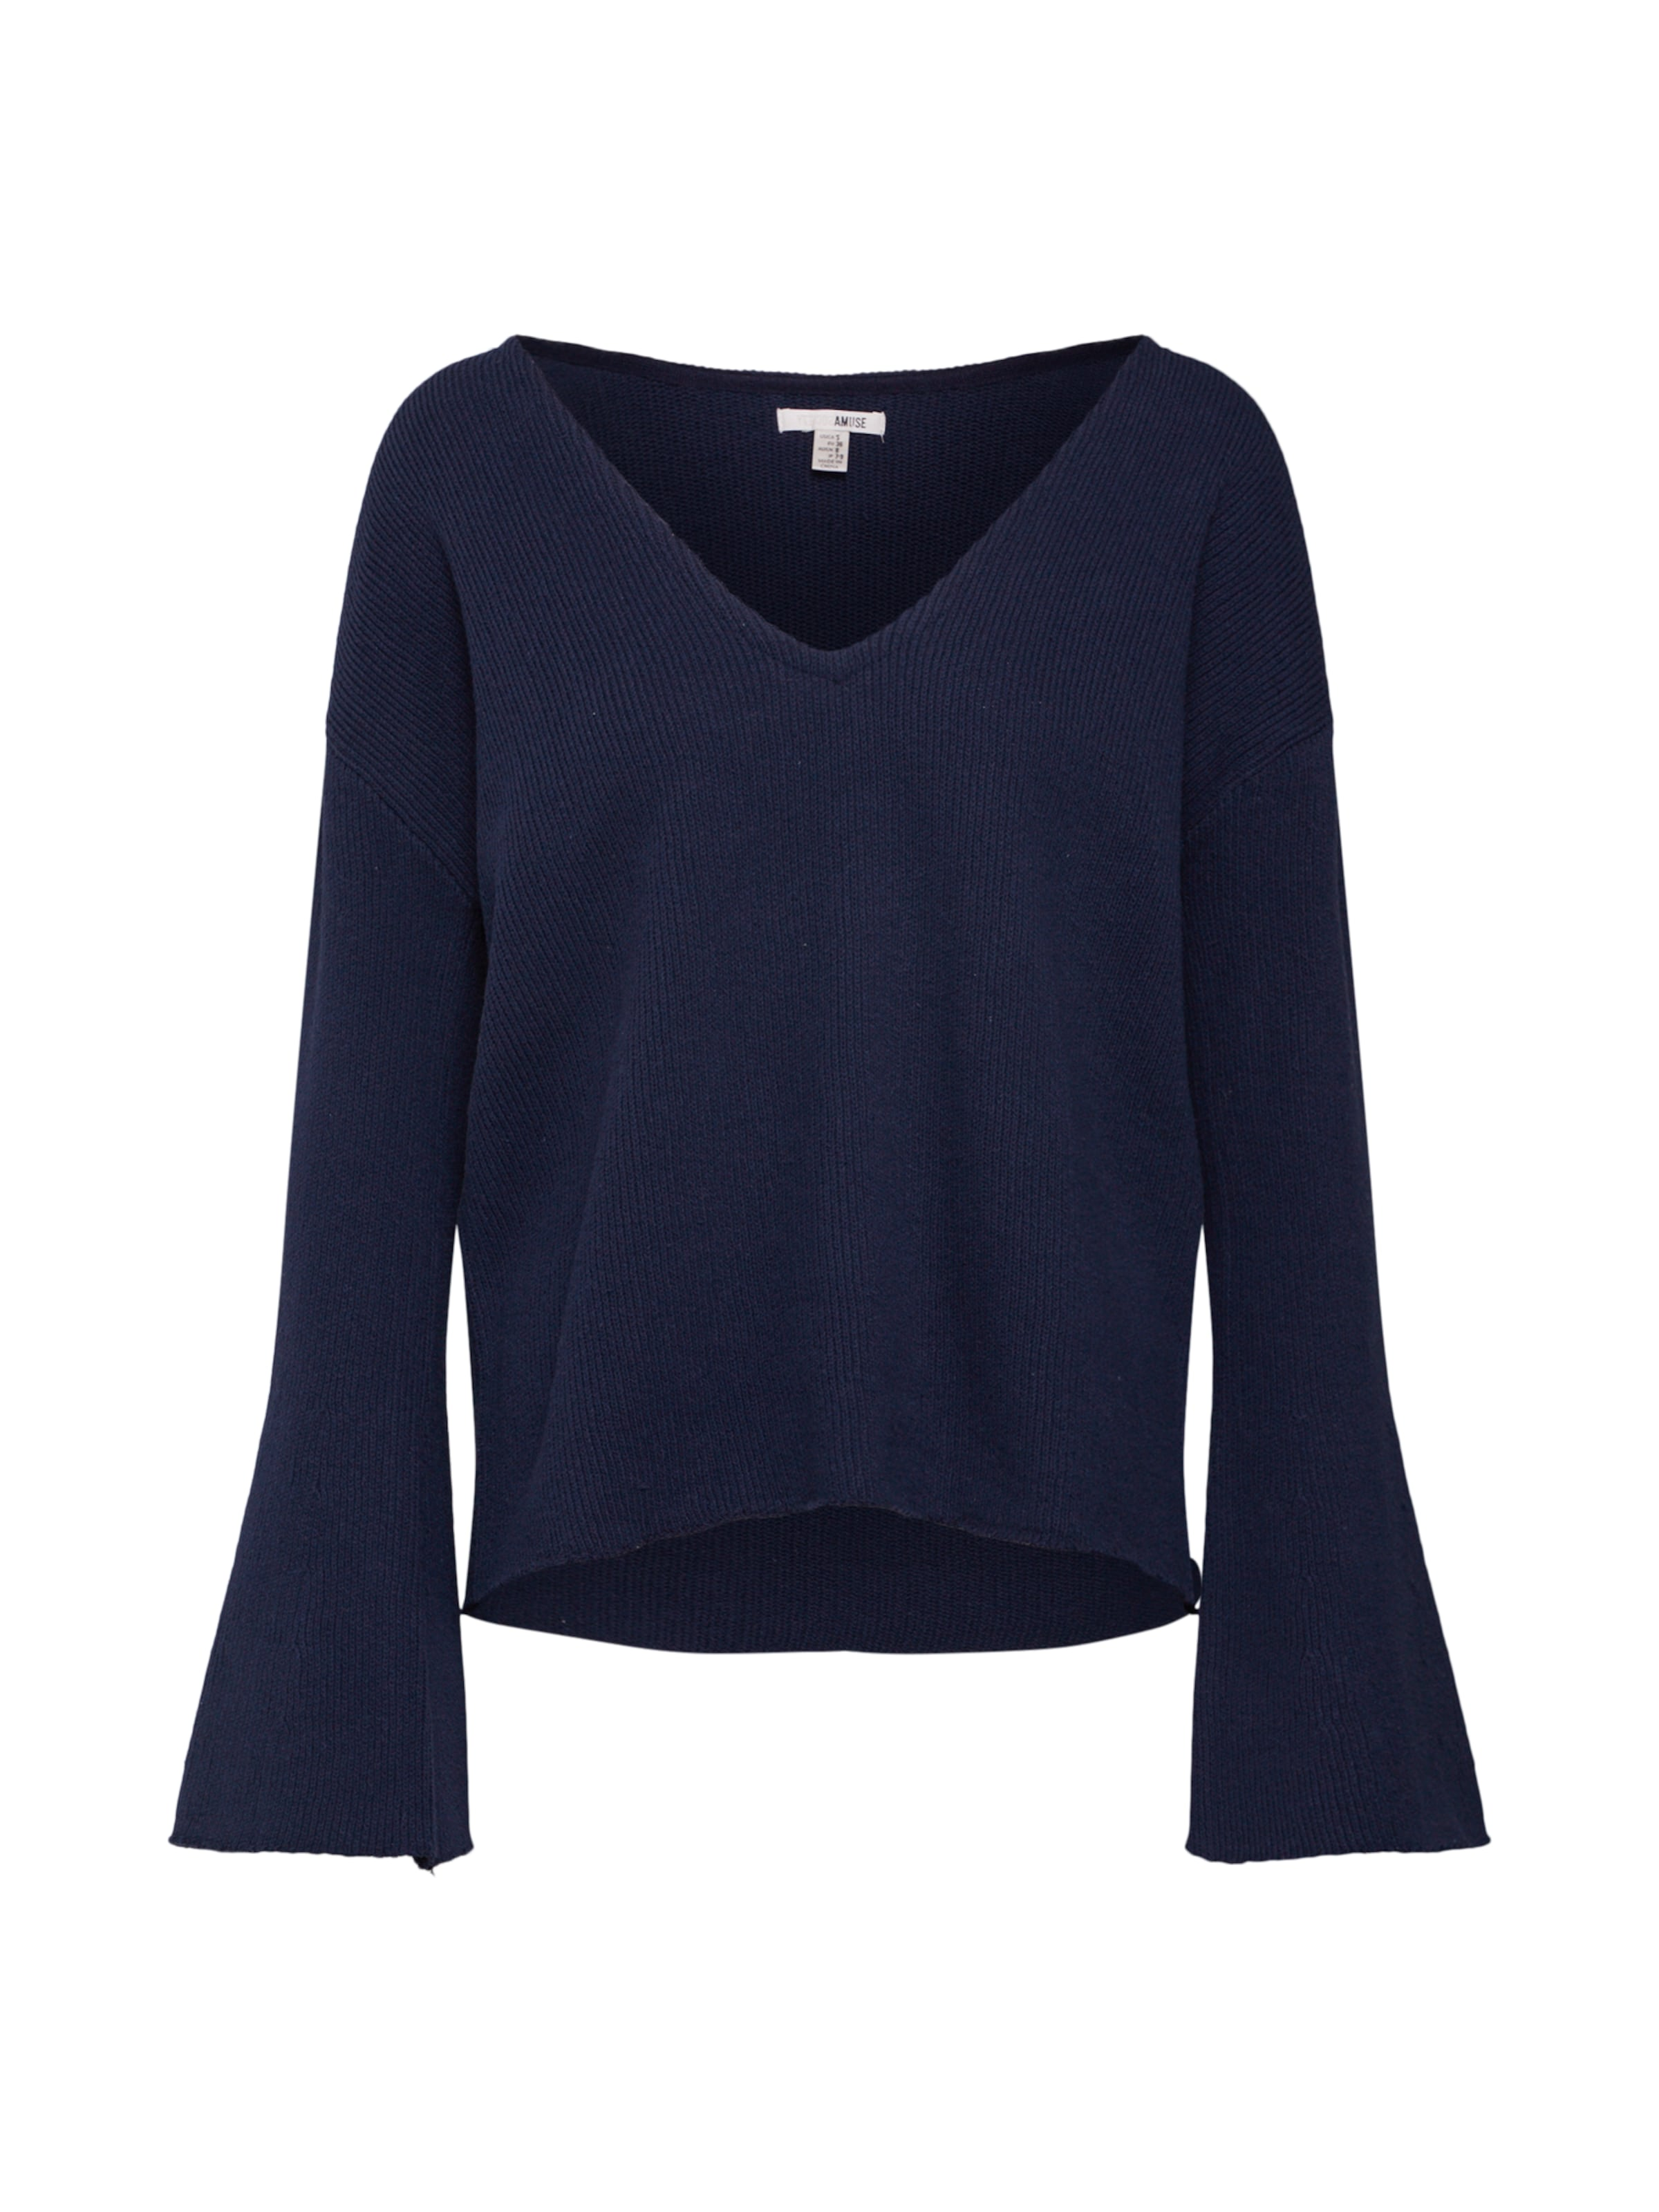 In Amuse Marine Bleu SocietyPull over GLUVqSzMp